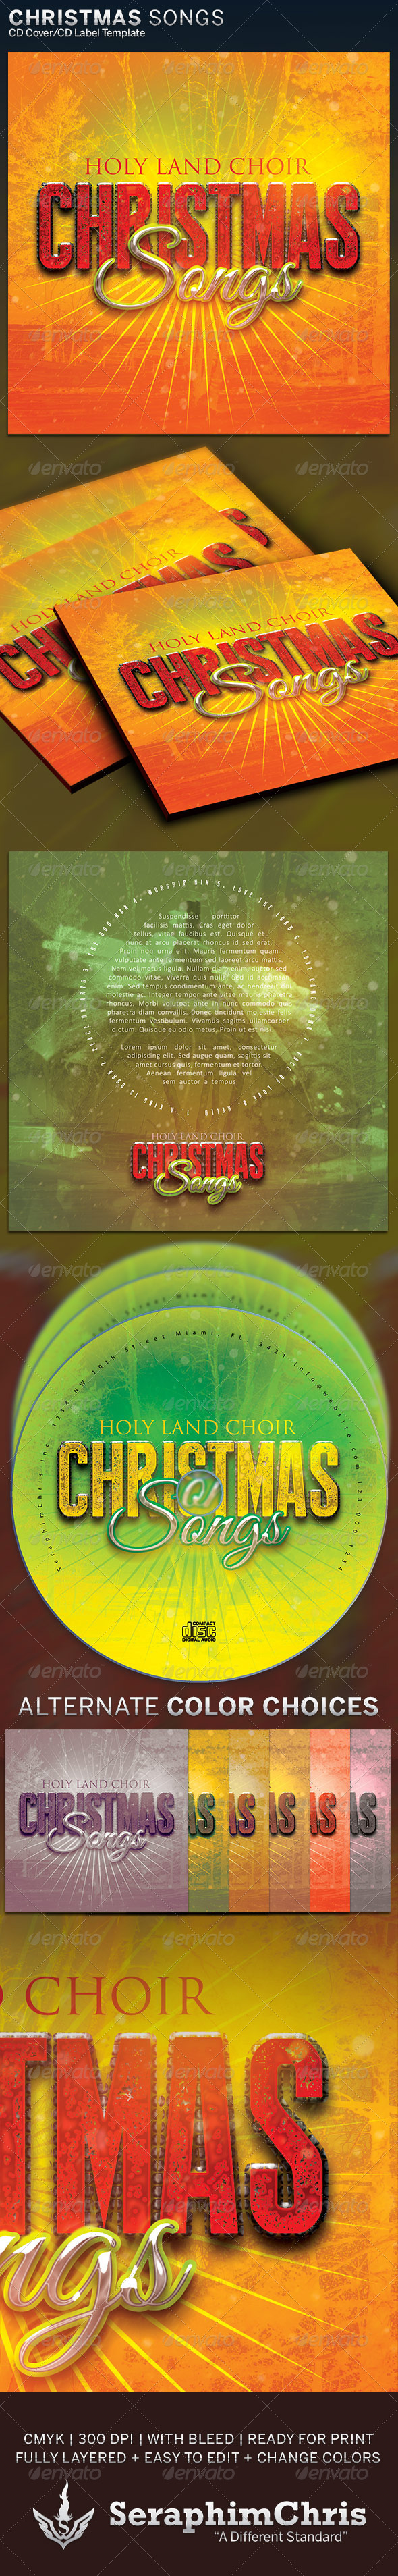 Christmas Songs: CD Cover Artwork Template - CD & DVD Artwork Print Templates